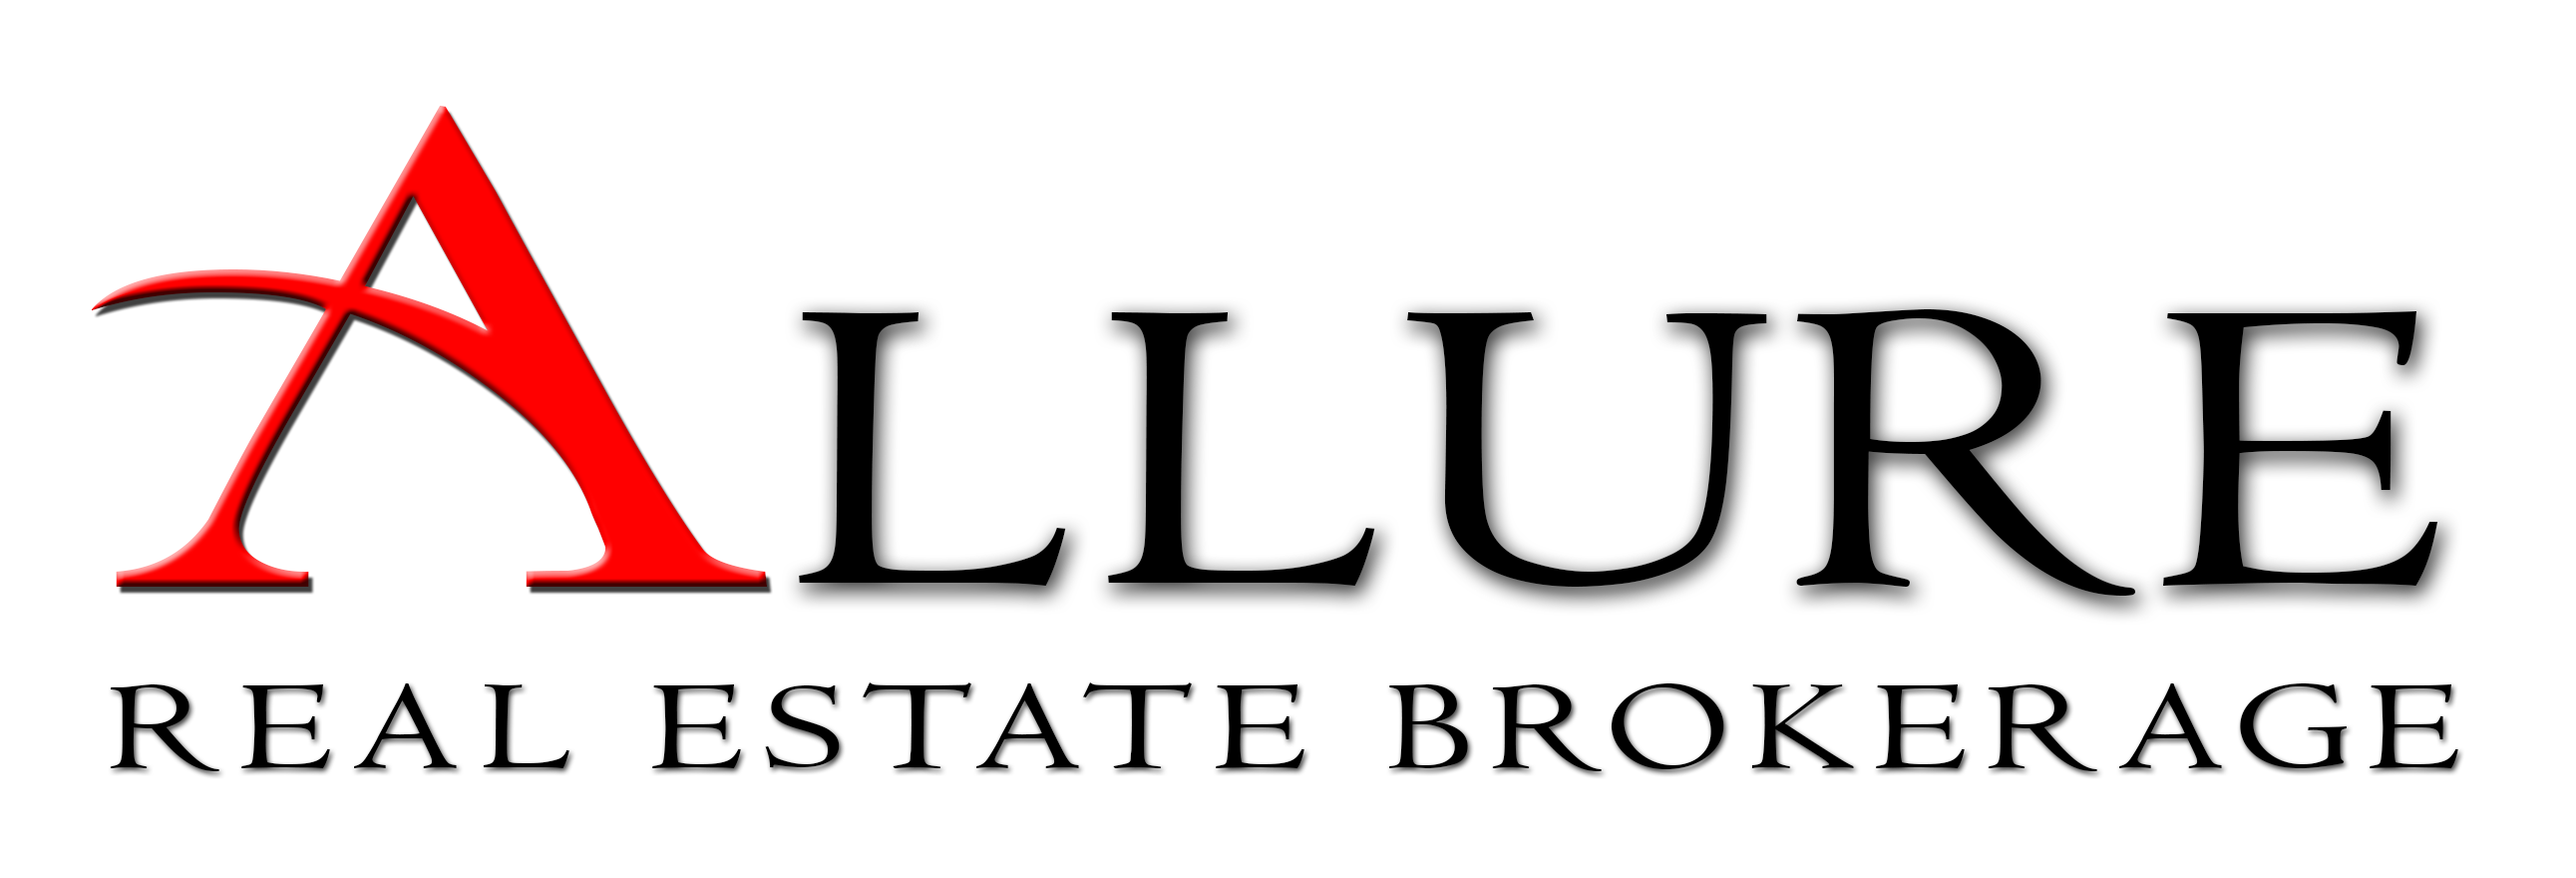 Austin - Allure Real Estate Brokerage